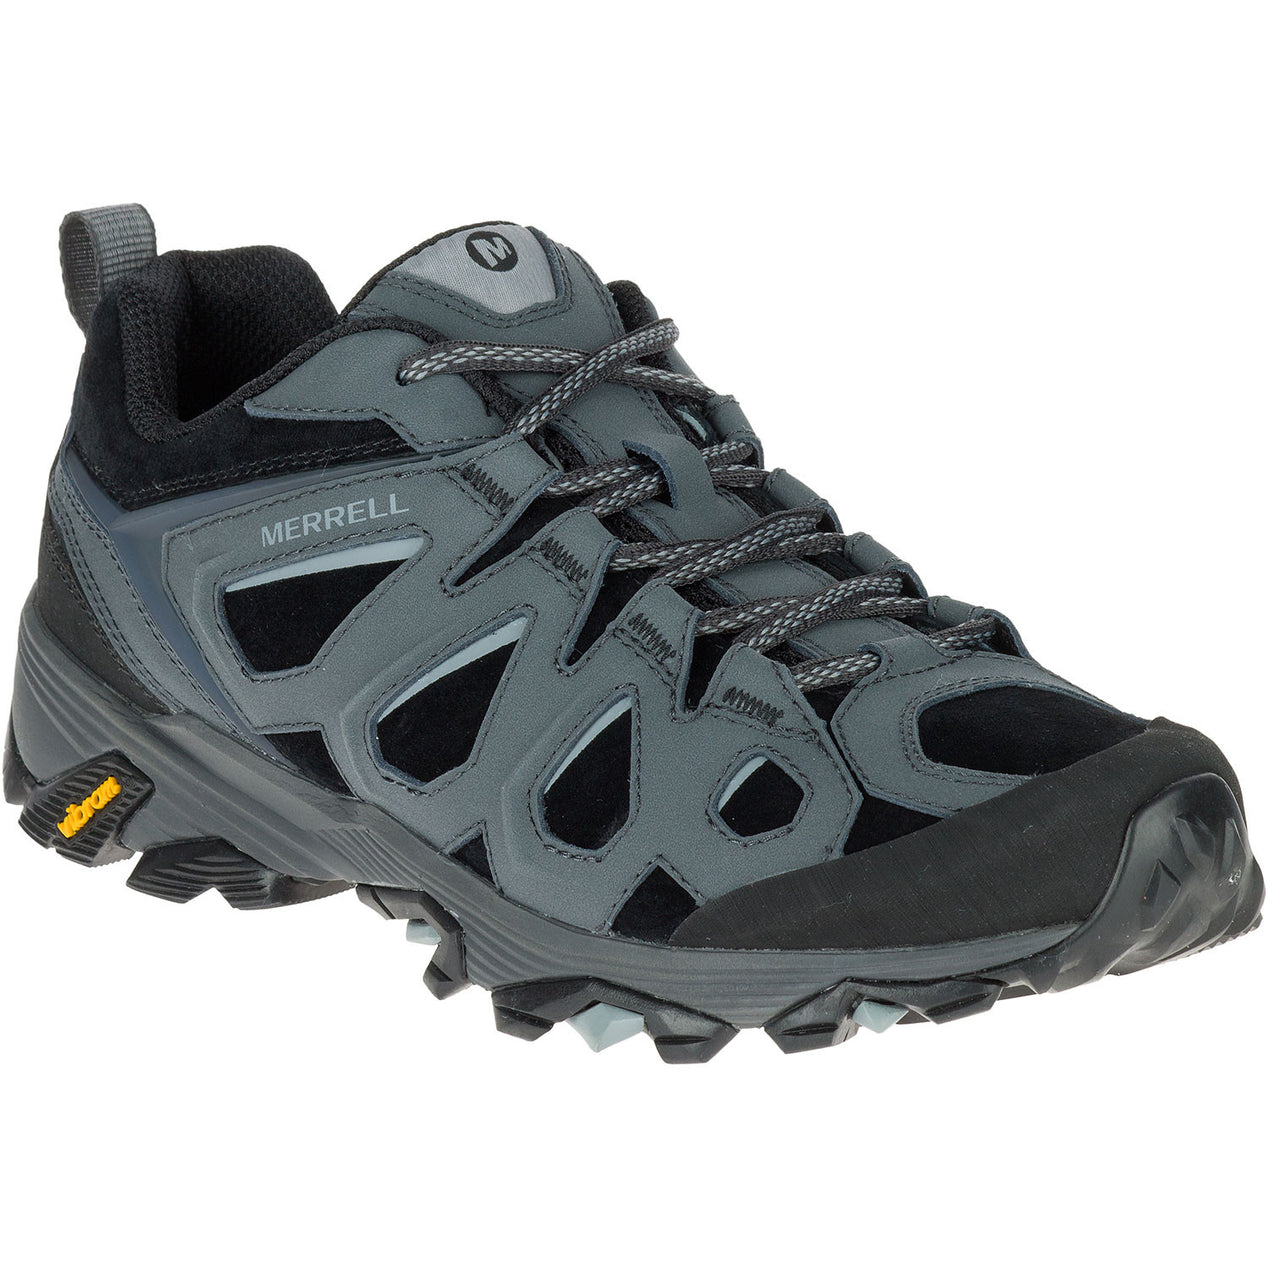 Chaussure à lacer Merrell Moab Moab FST Ice+ Thermo pour dames